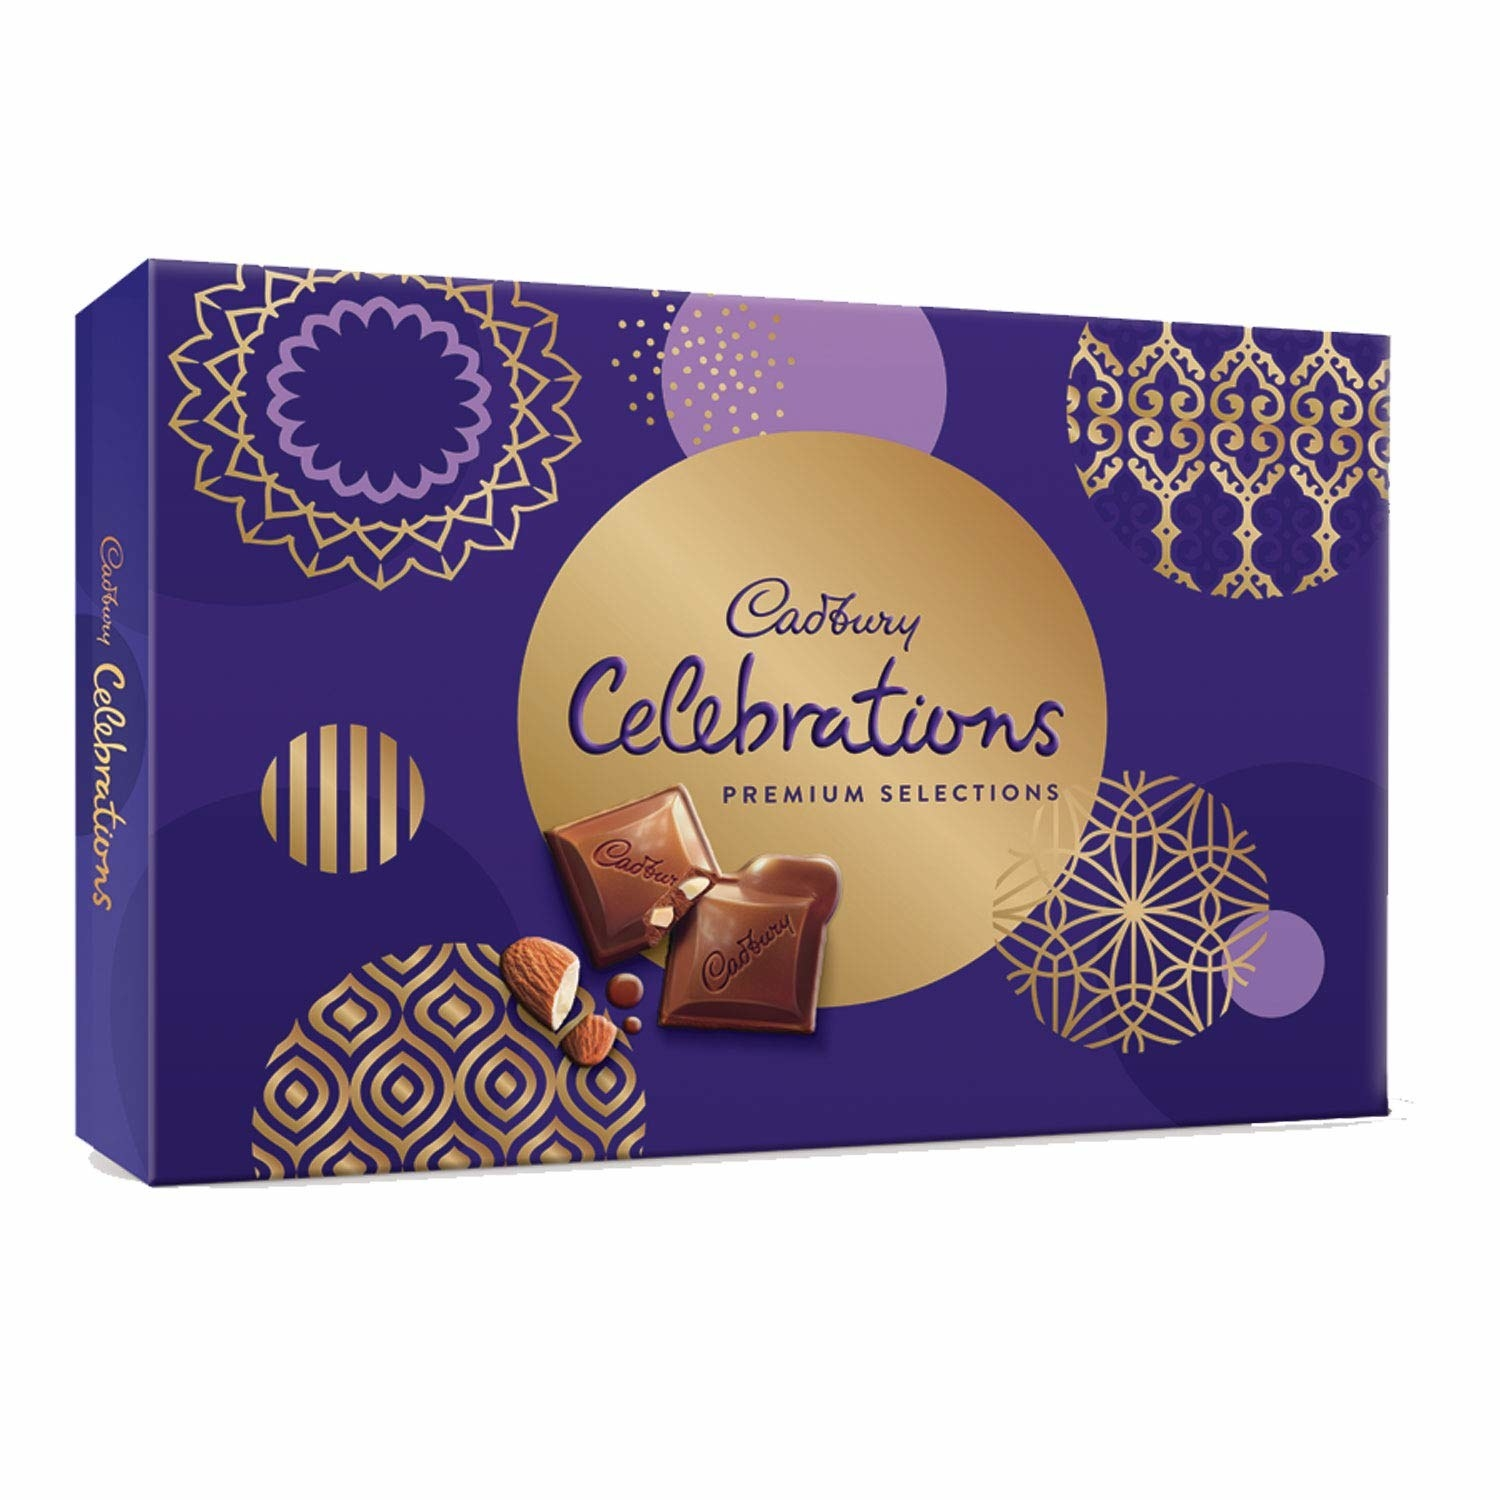 Packaging of the chocolate